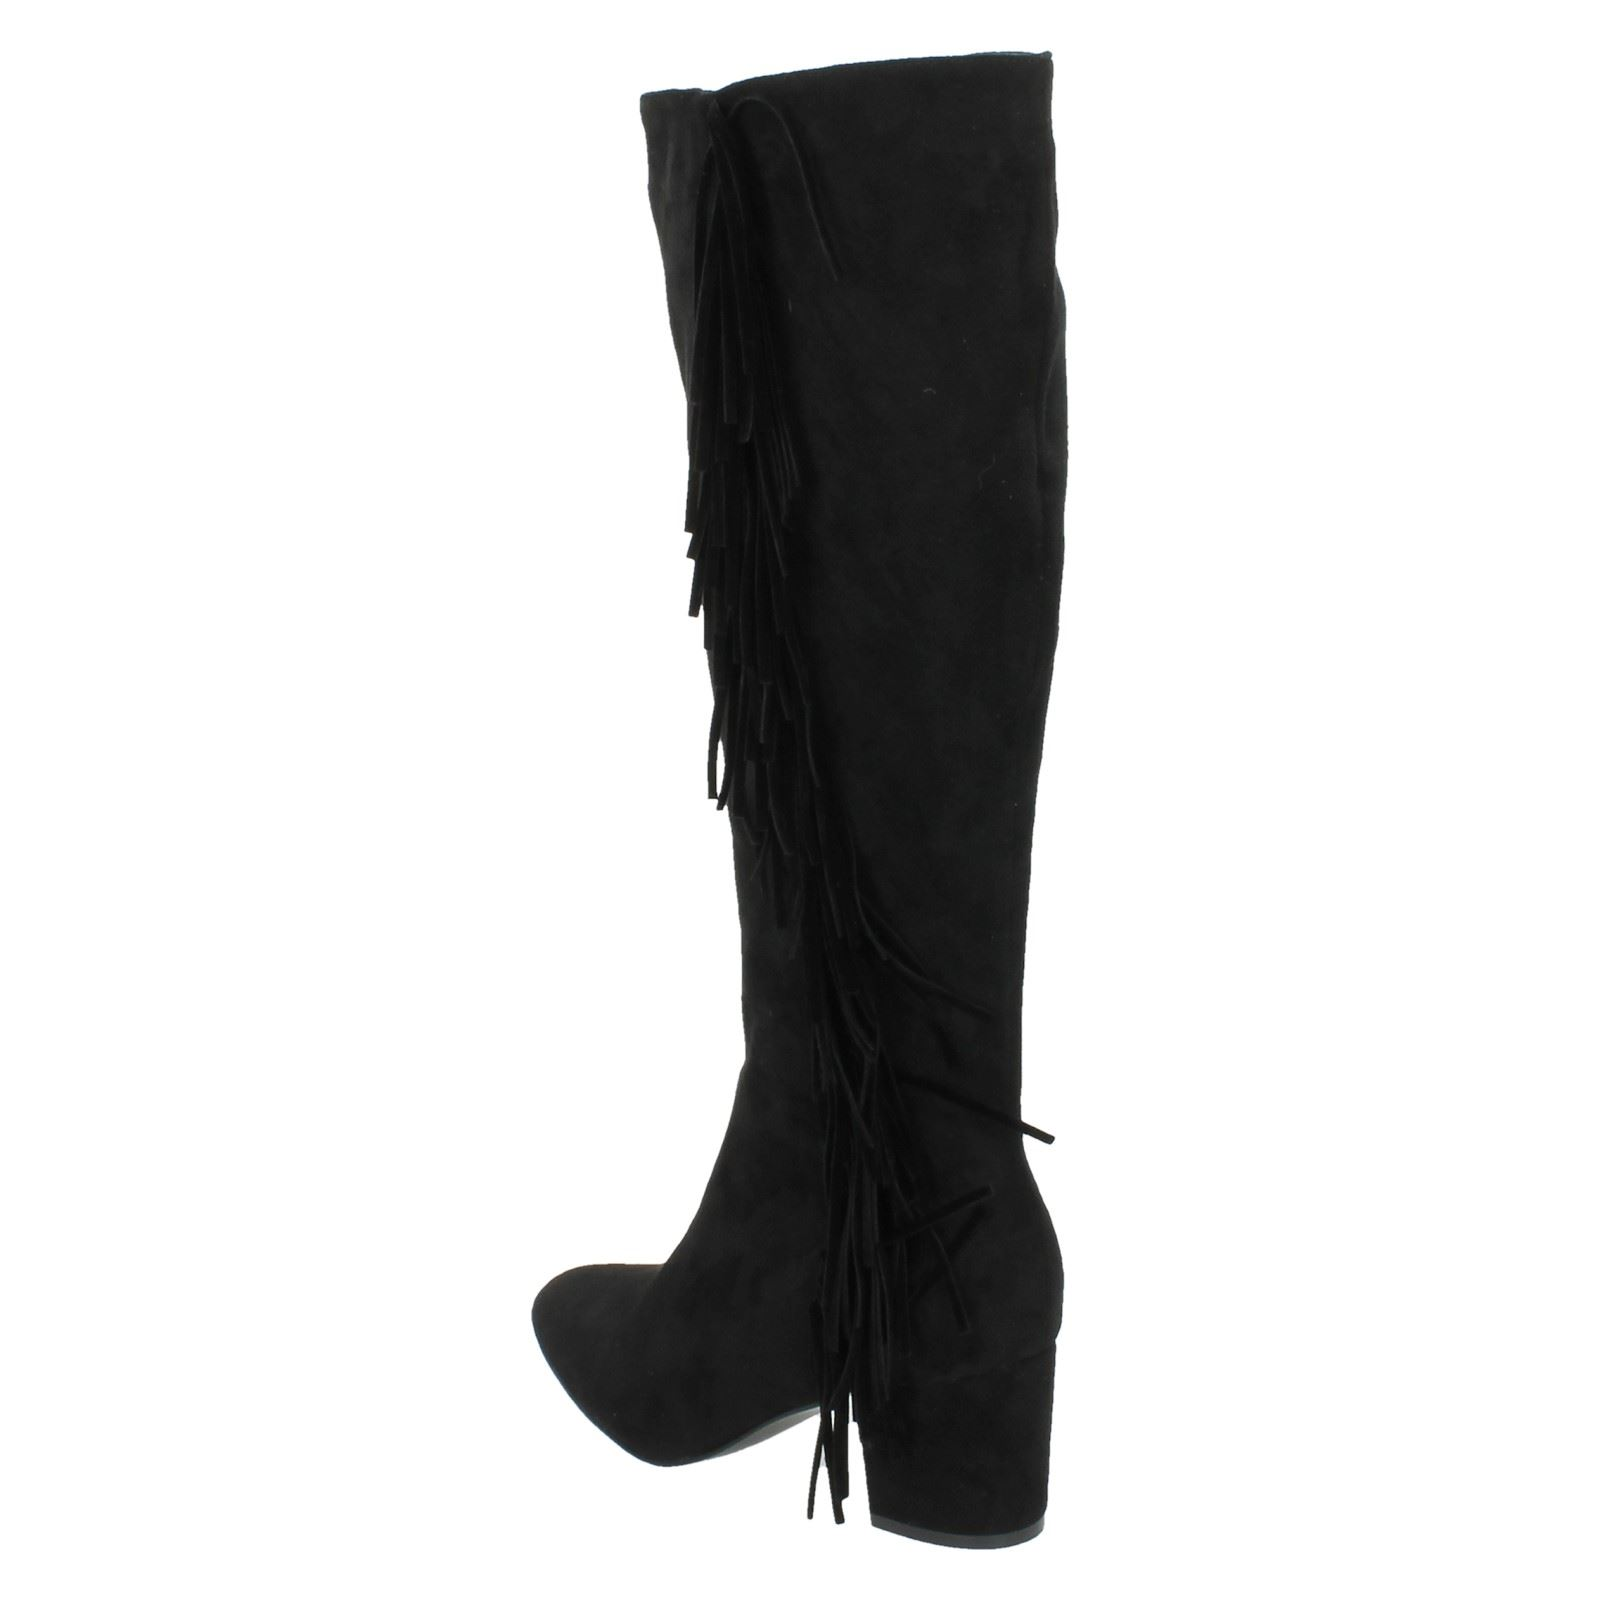 On Boots Spot Tasseled Ladies Casual Black BwwdqP